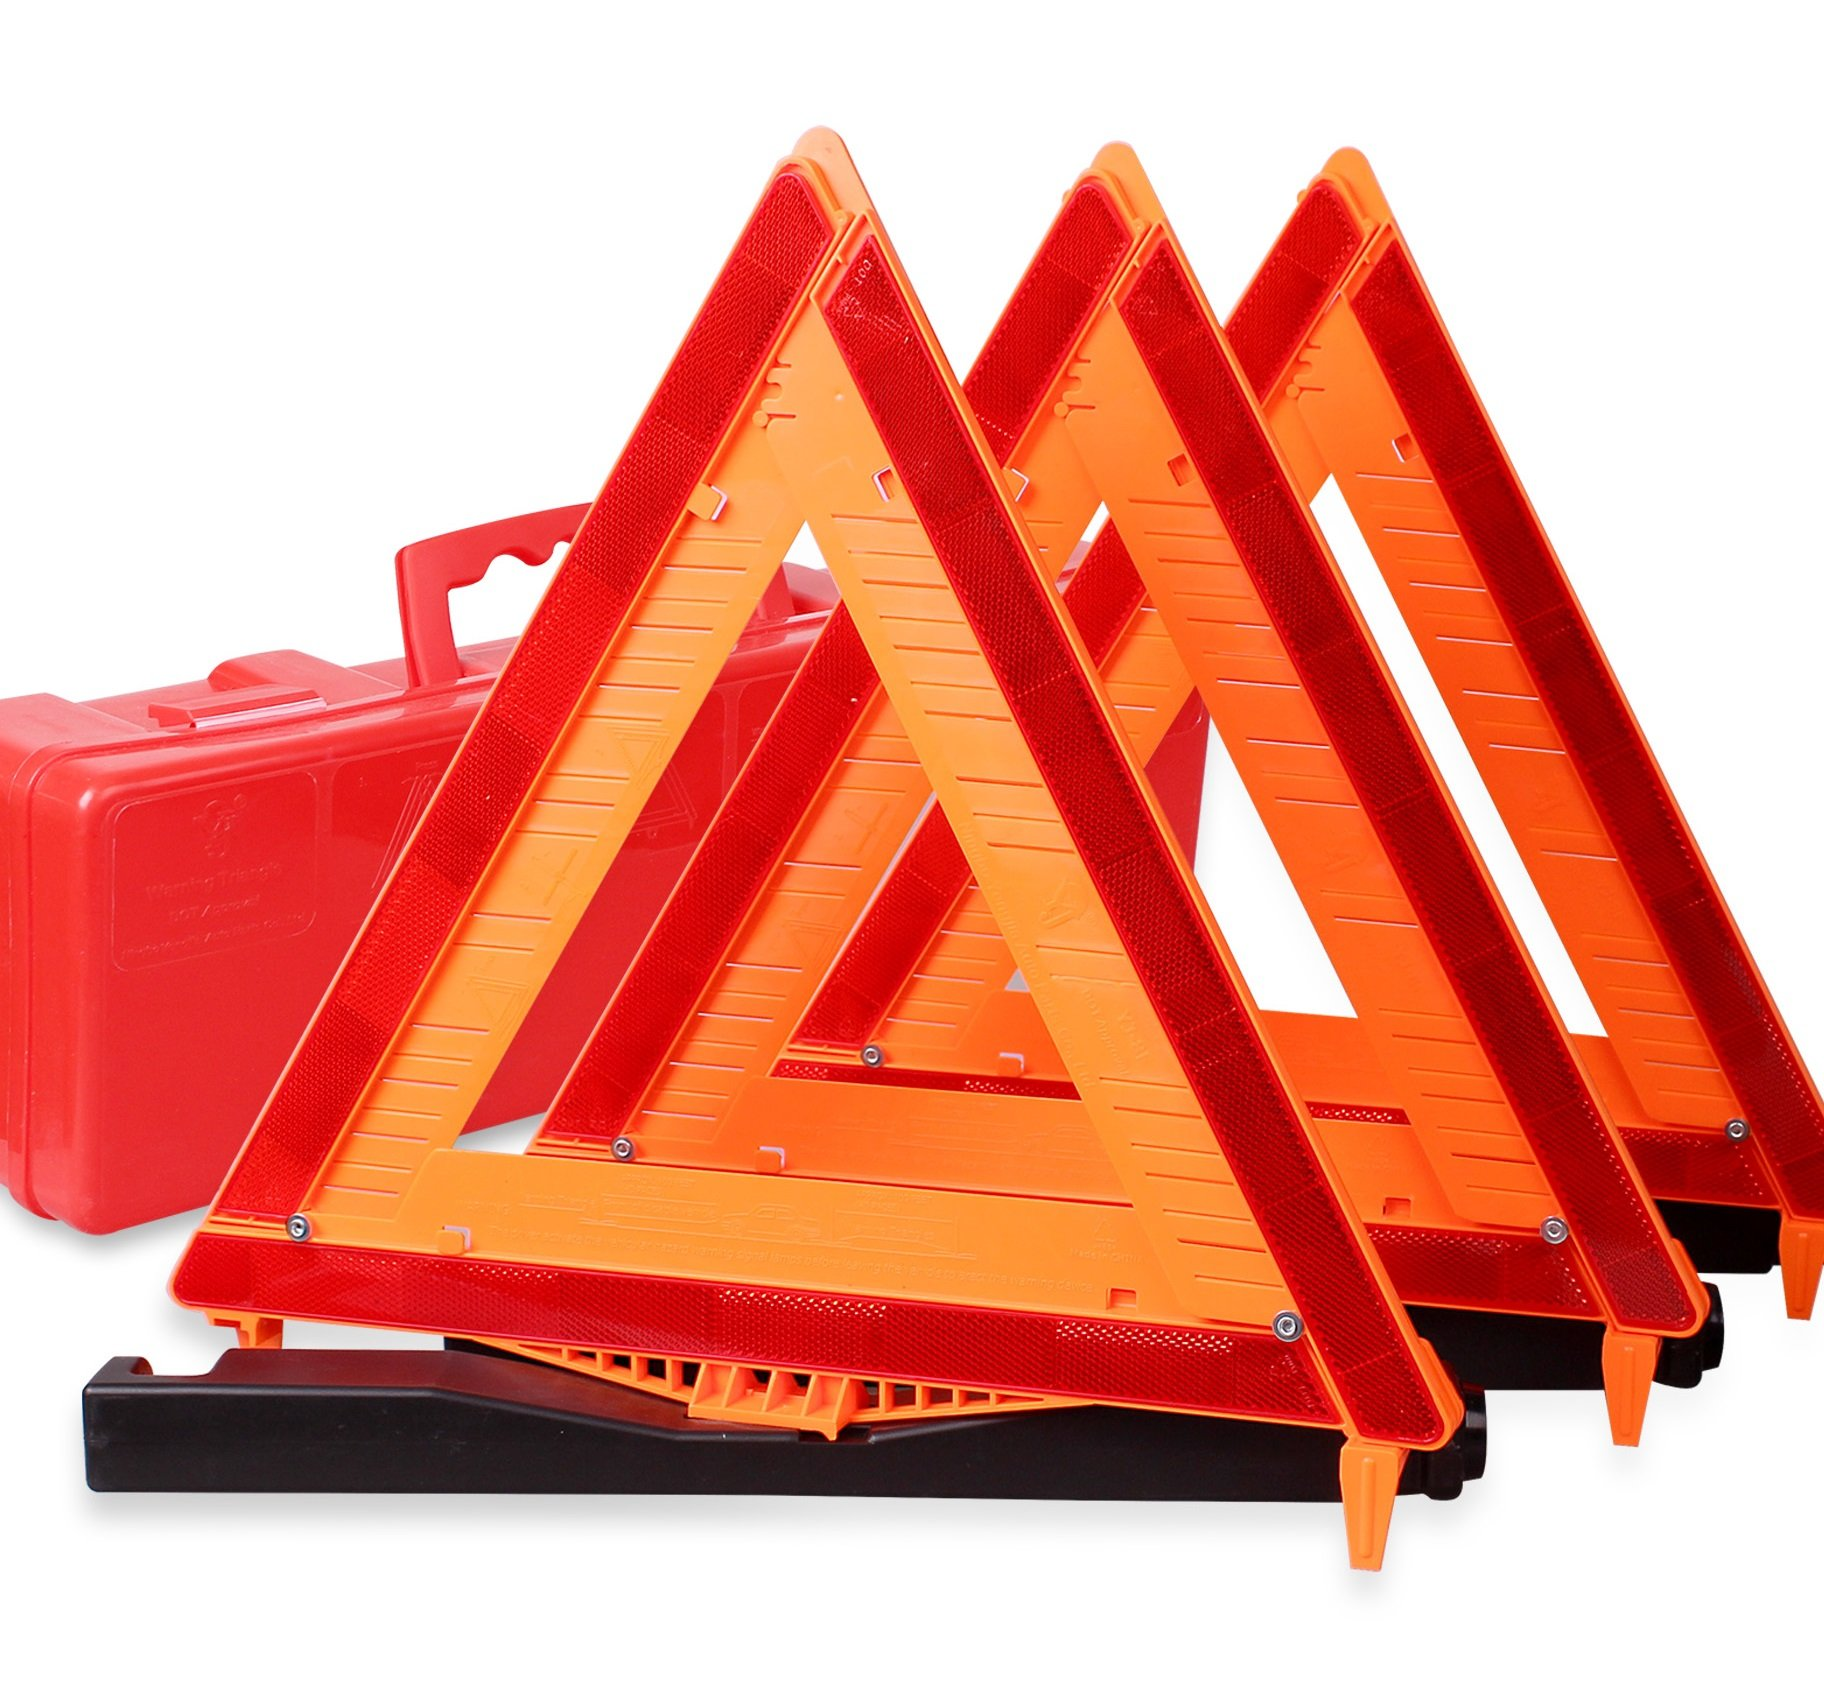 CARTMAN Warning Triangle DOT Approved 3PK, Identical to: United States FMVSS 571.125, Reflective Warning Road Safety Triangle Kit by CARTMAN